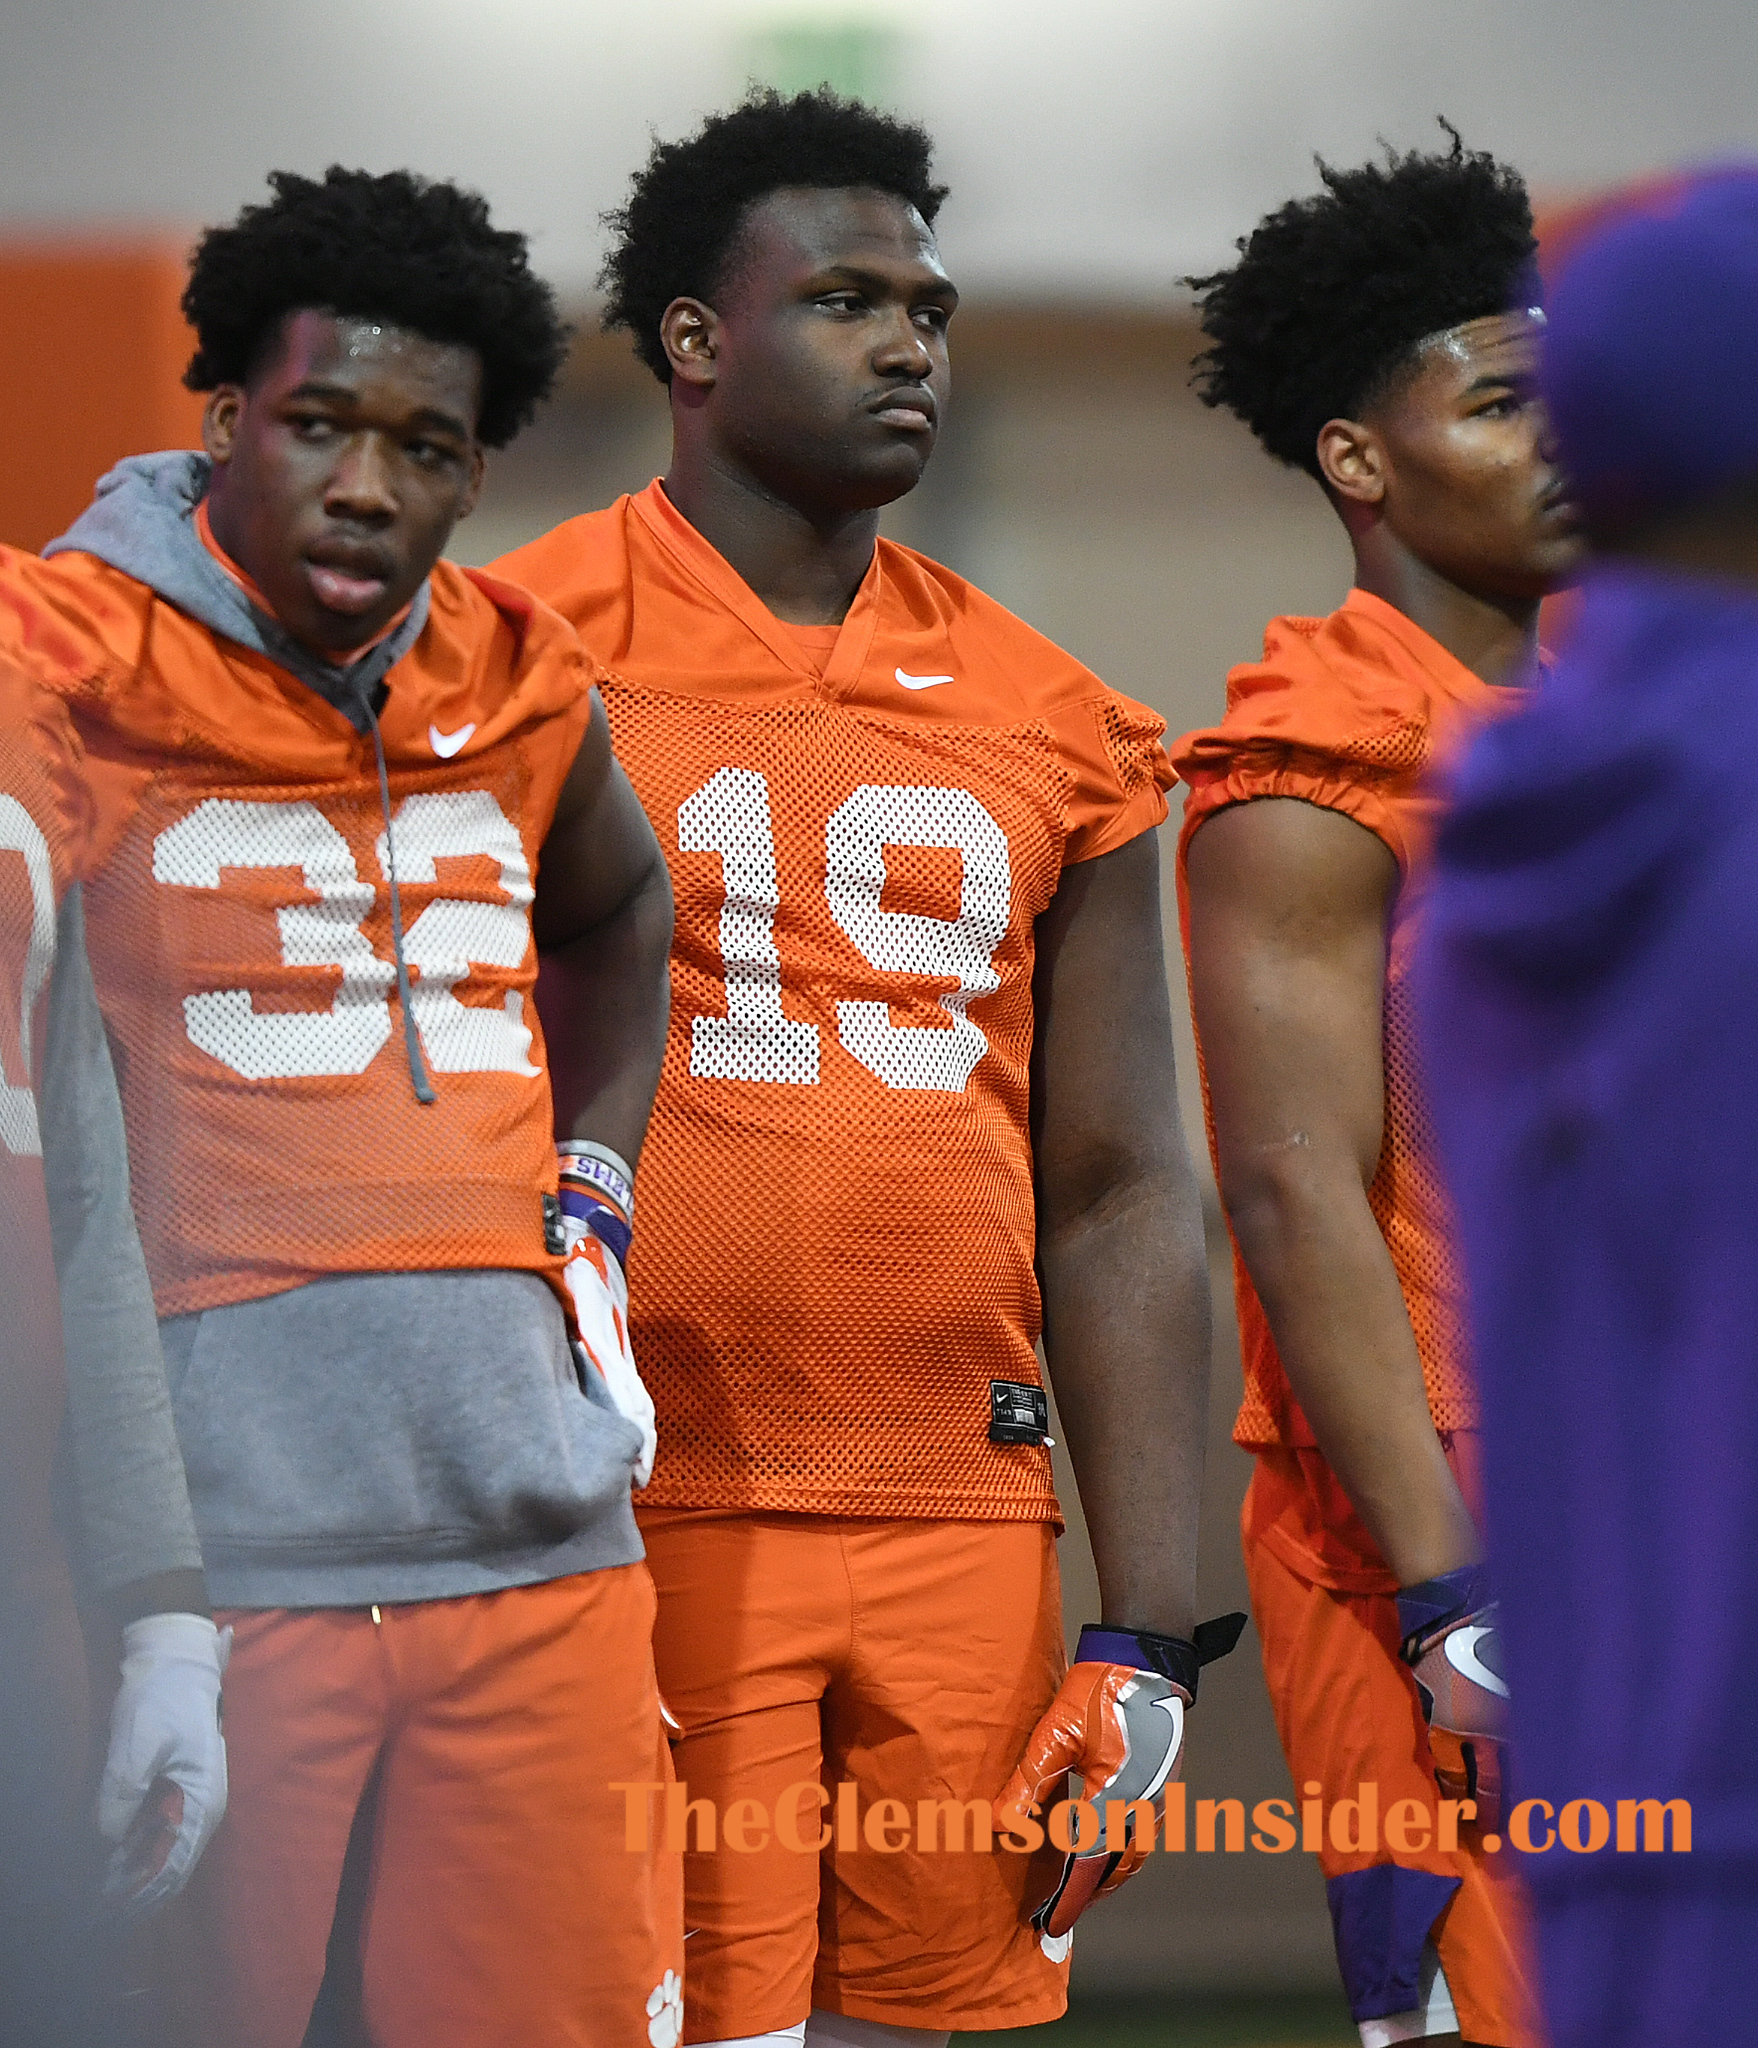 Clemson defensive lineman Demonte Capehart (19) during the Tiger's spring practice Wednesday, February 26, 2020. Bart Boatwright/The Clemson Insider